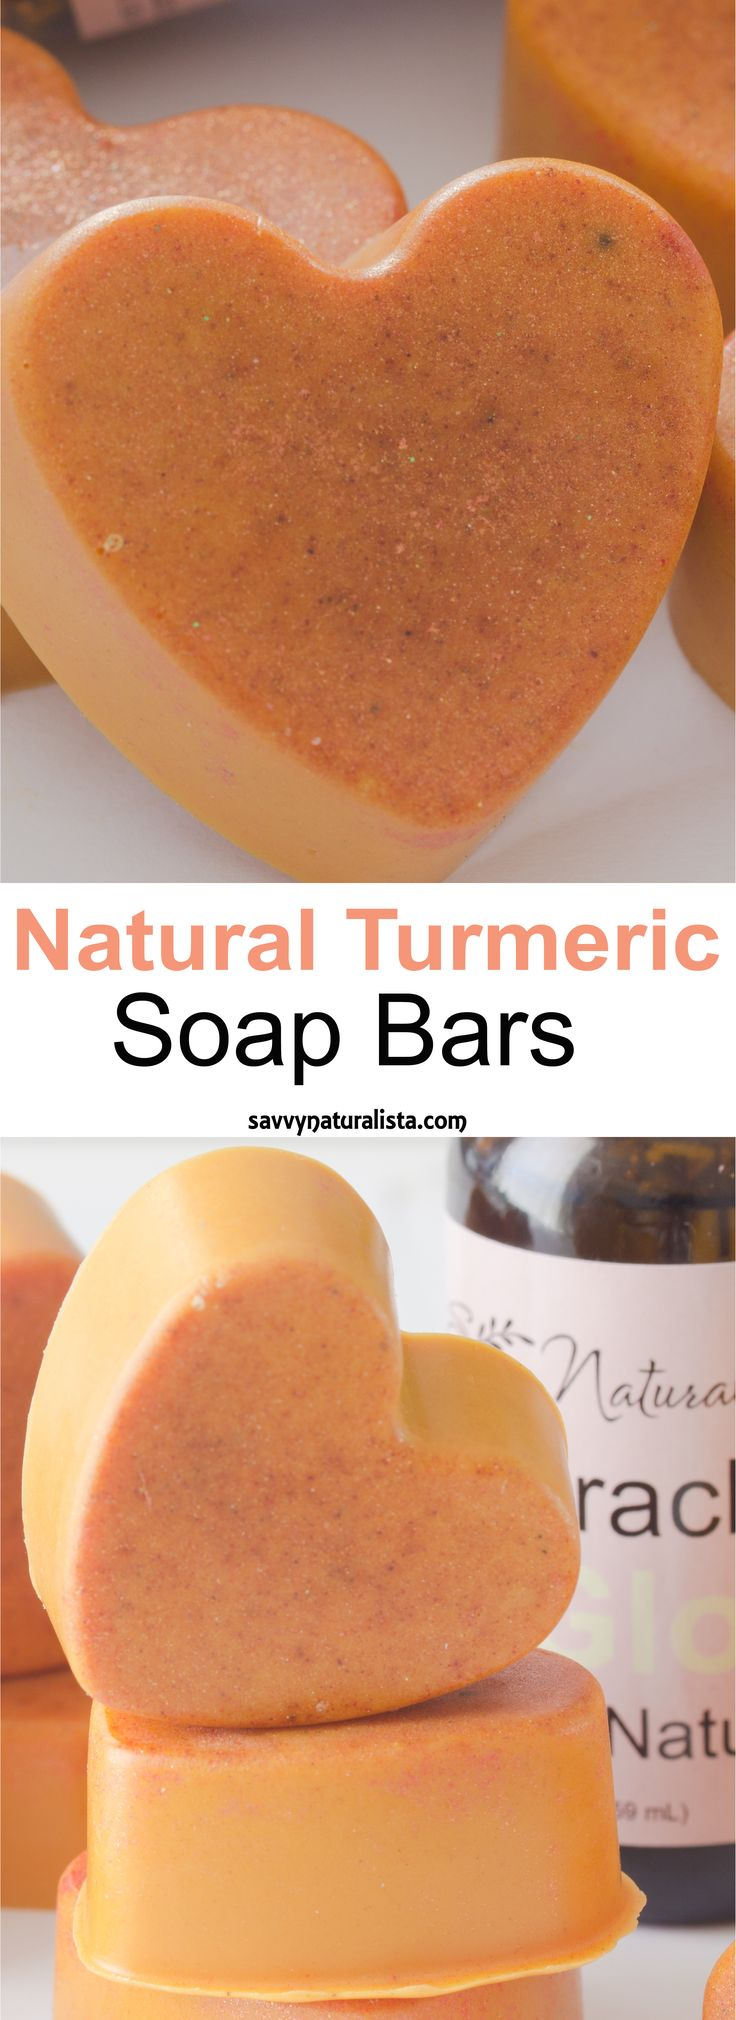 In this DIY Saturday were making turmeric soap.. Color your soap with turmeric powder to make it a lovely yellow and get all the skin loving benefits of turmeric powder